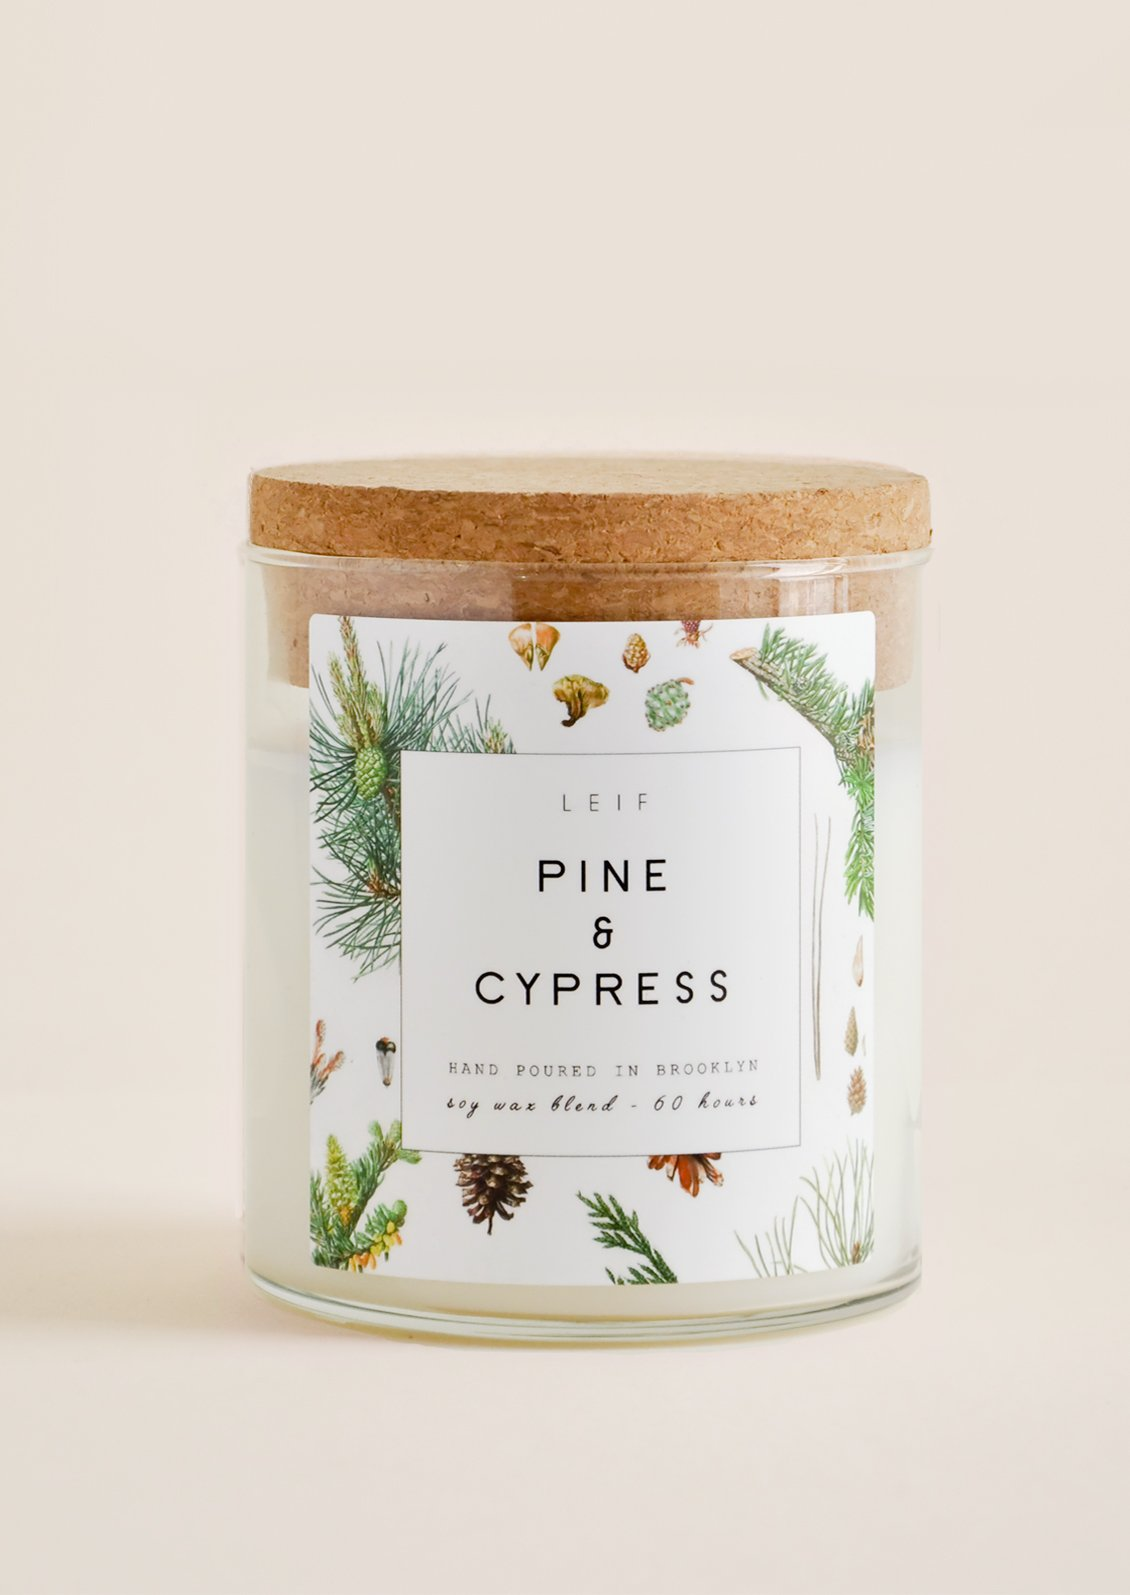 Leif Pine & Cypress - My Favorite Winter Candle